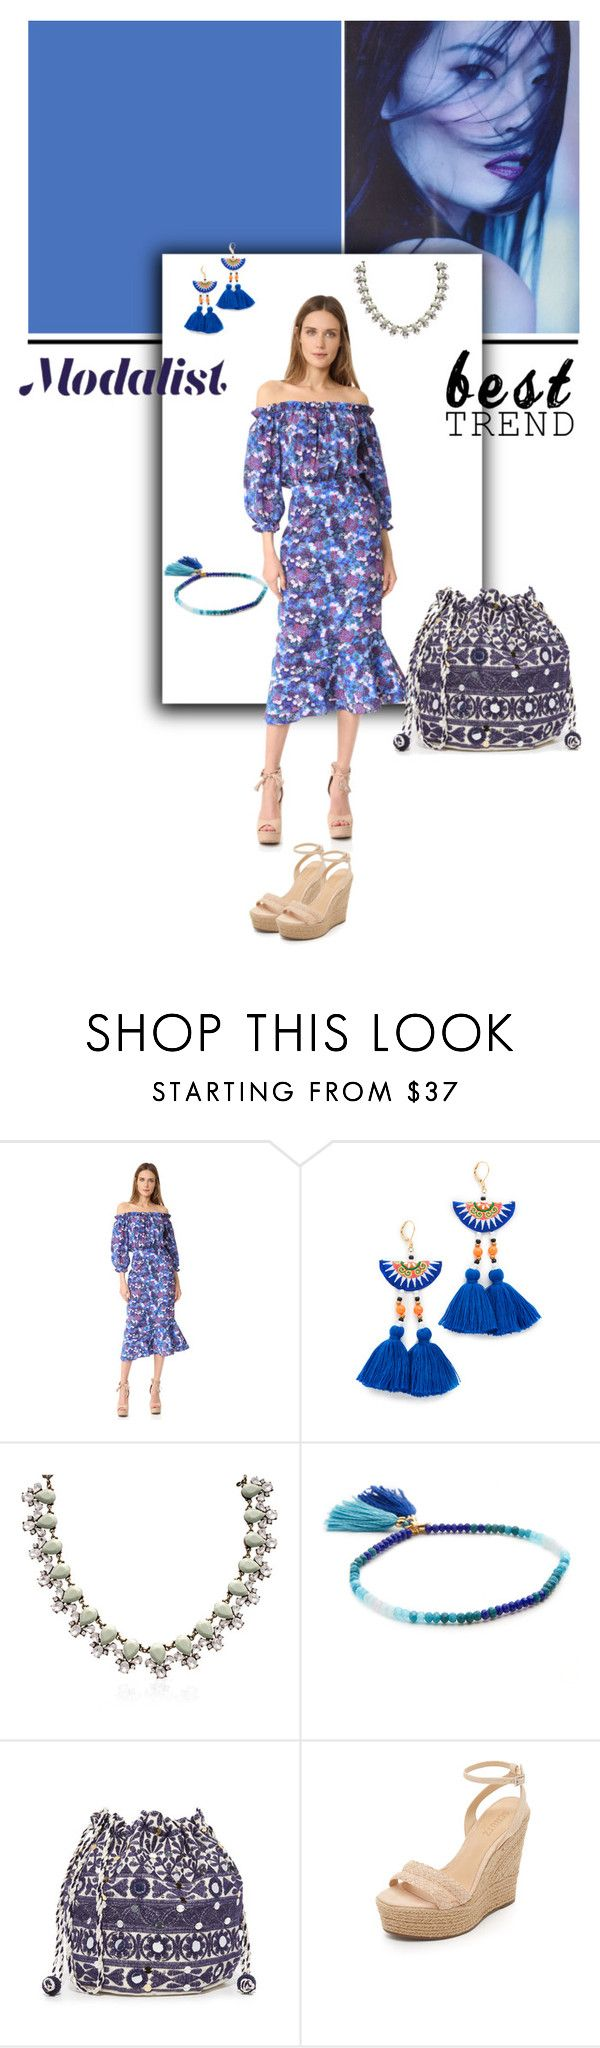 """""""Graceful in Blue"""" by modalist ❤ liked on Polyvore featuring Saloni, Shashi, Star Mela and Schutz"""